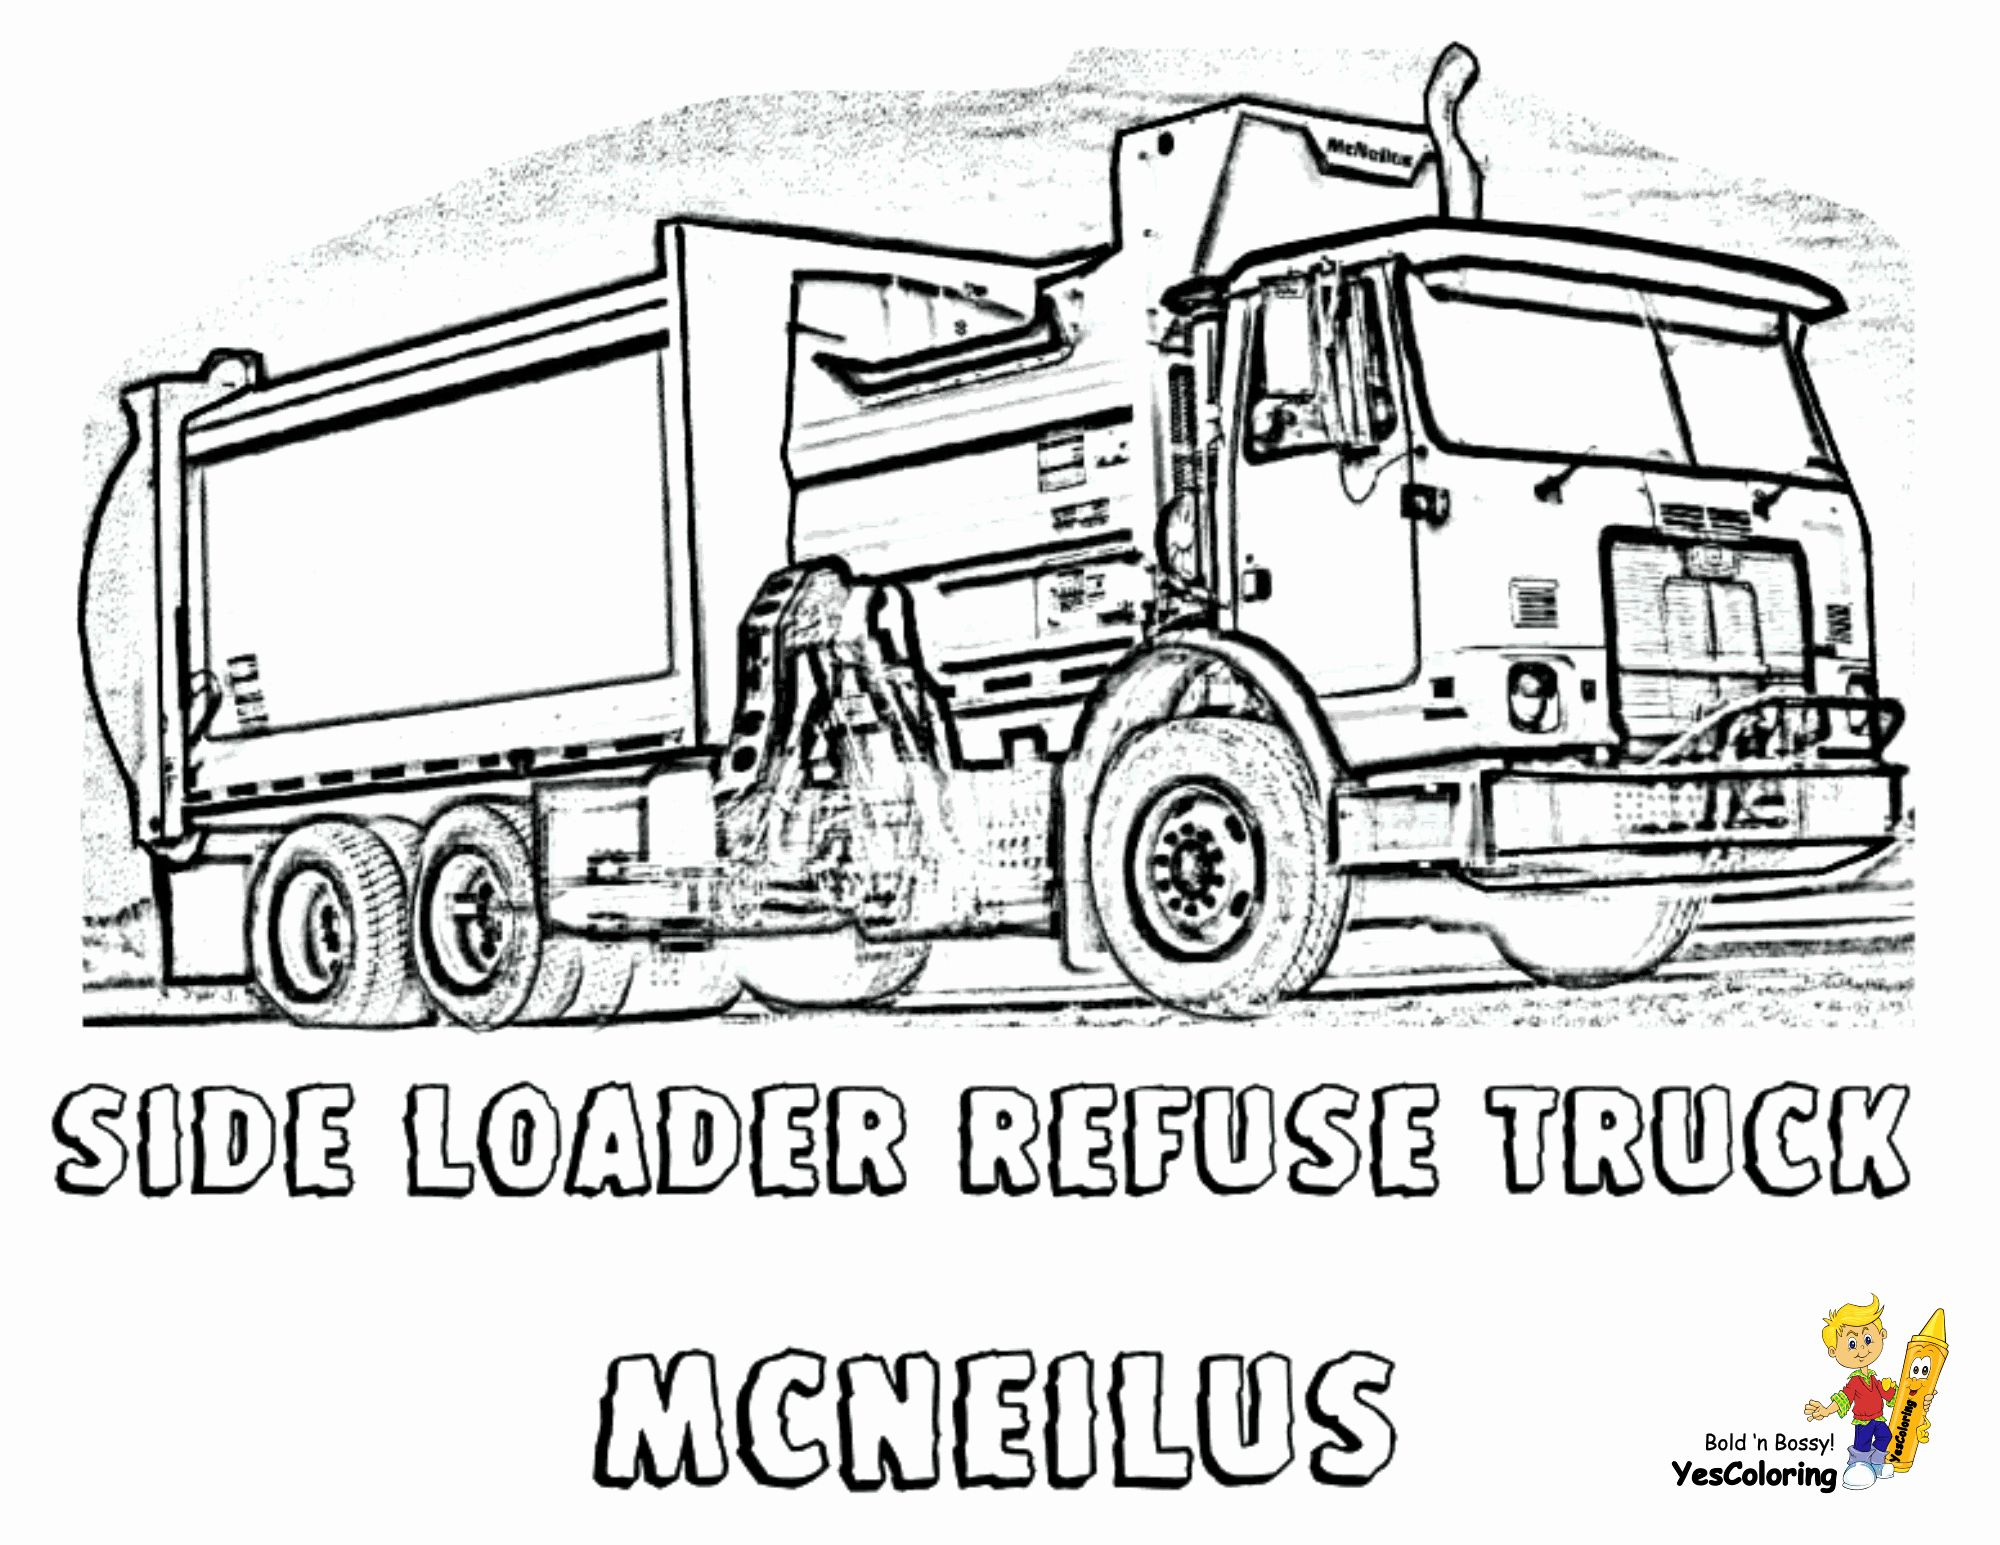 Garbage Truck Coloring Page New Grimy Garbage Truck Coloring Page Free Truck Coloring Pages Garbage Truck Monster Truck Coloring Pages